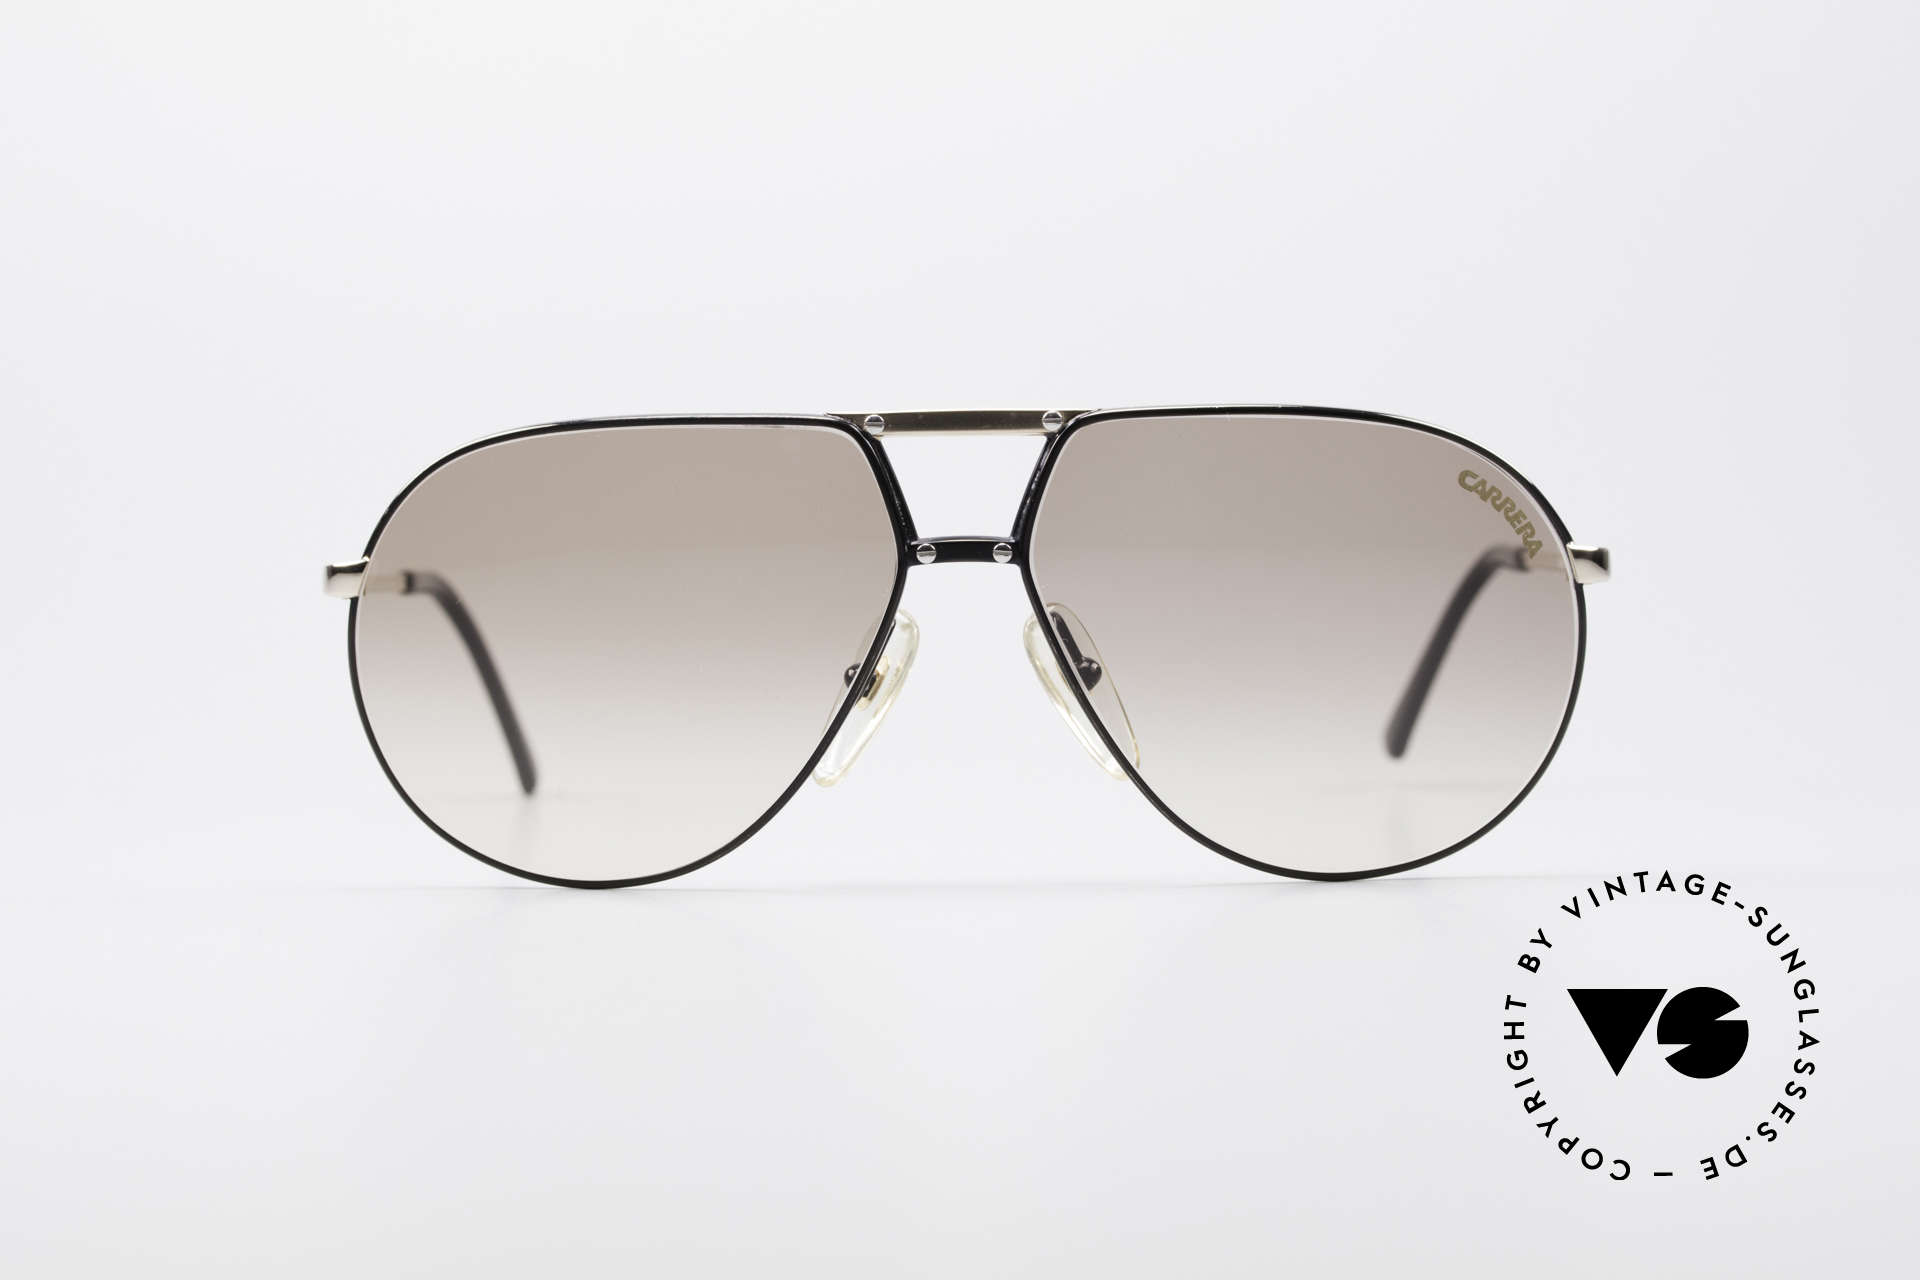 1b251a266a8 Sunglasses Carrera 5326 - S 80 s Men s Sunglasses